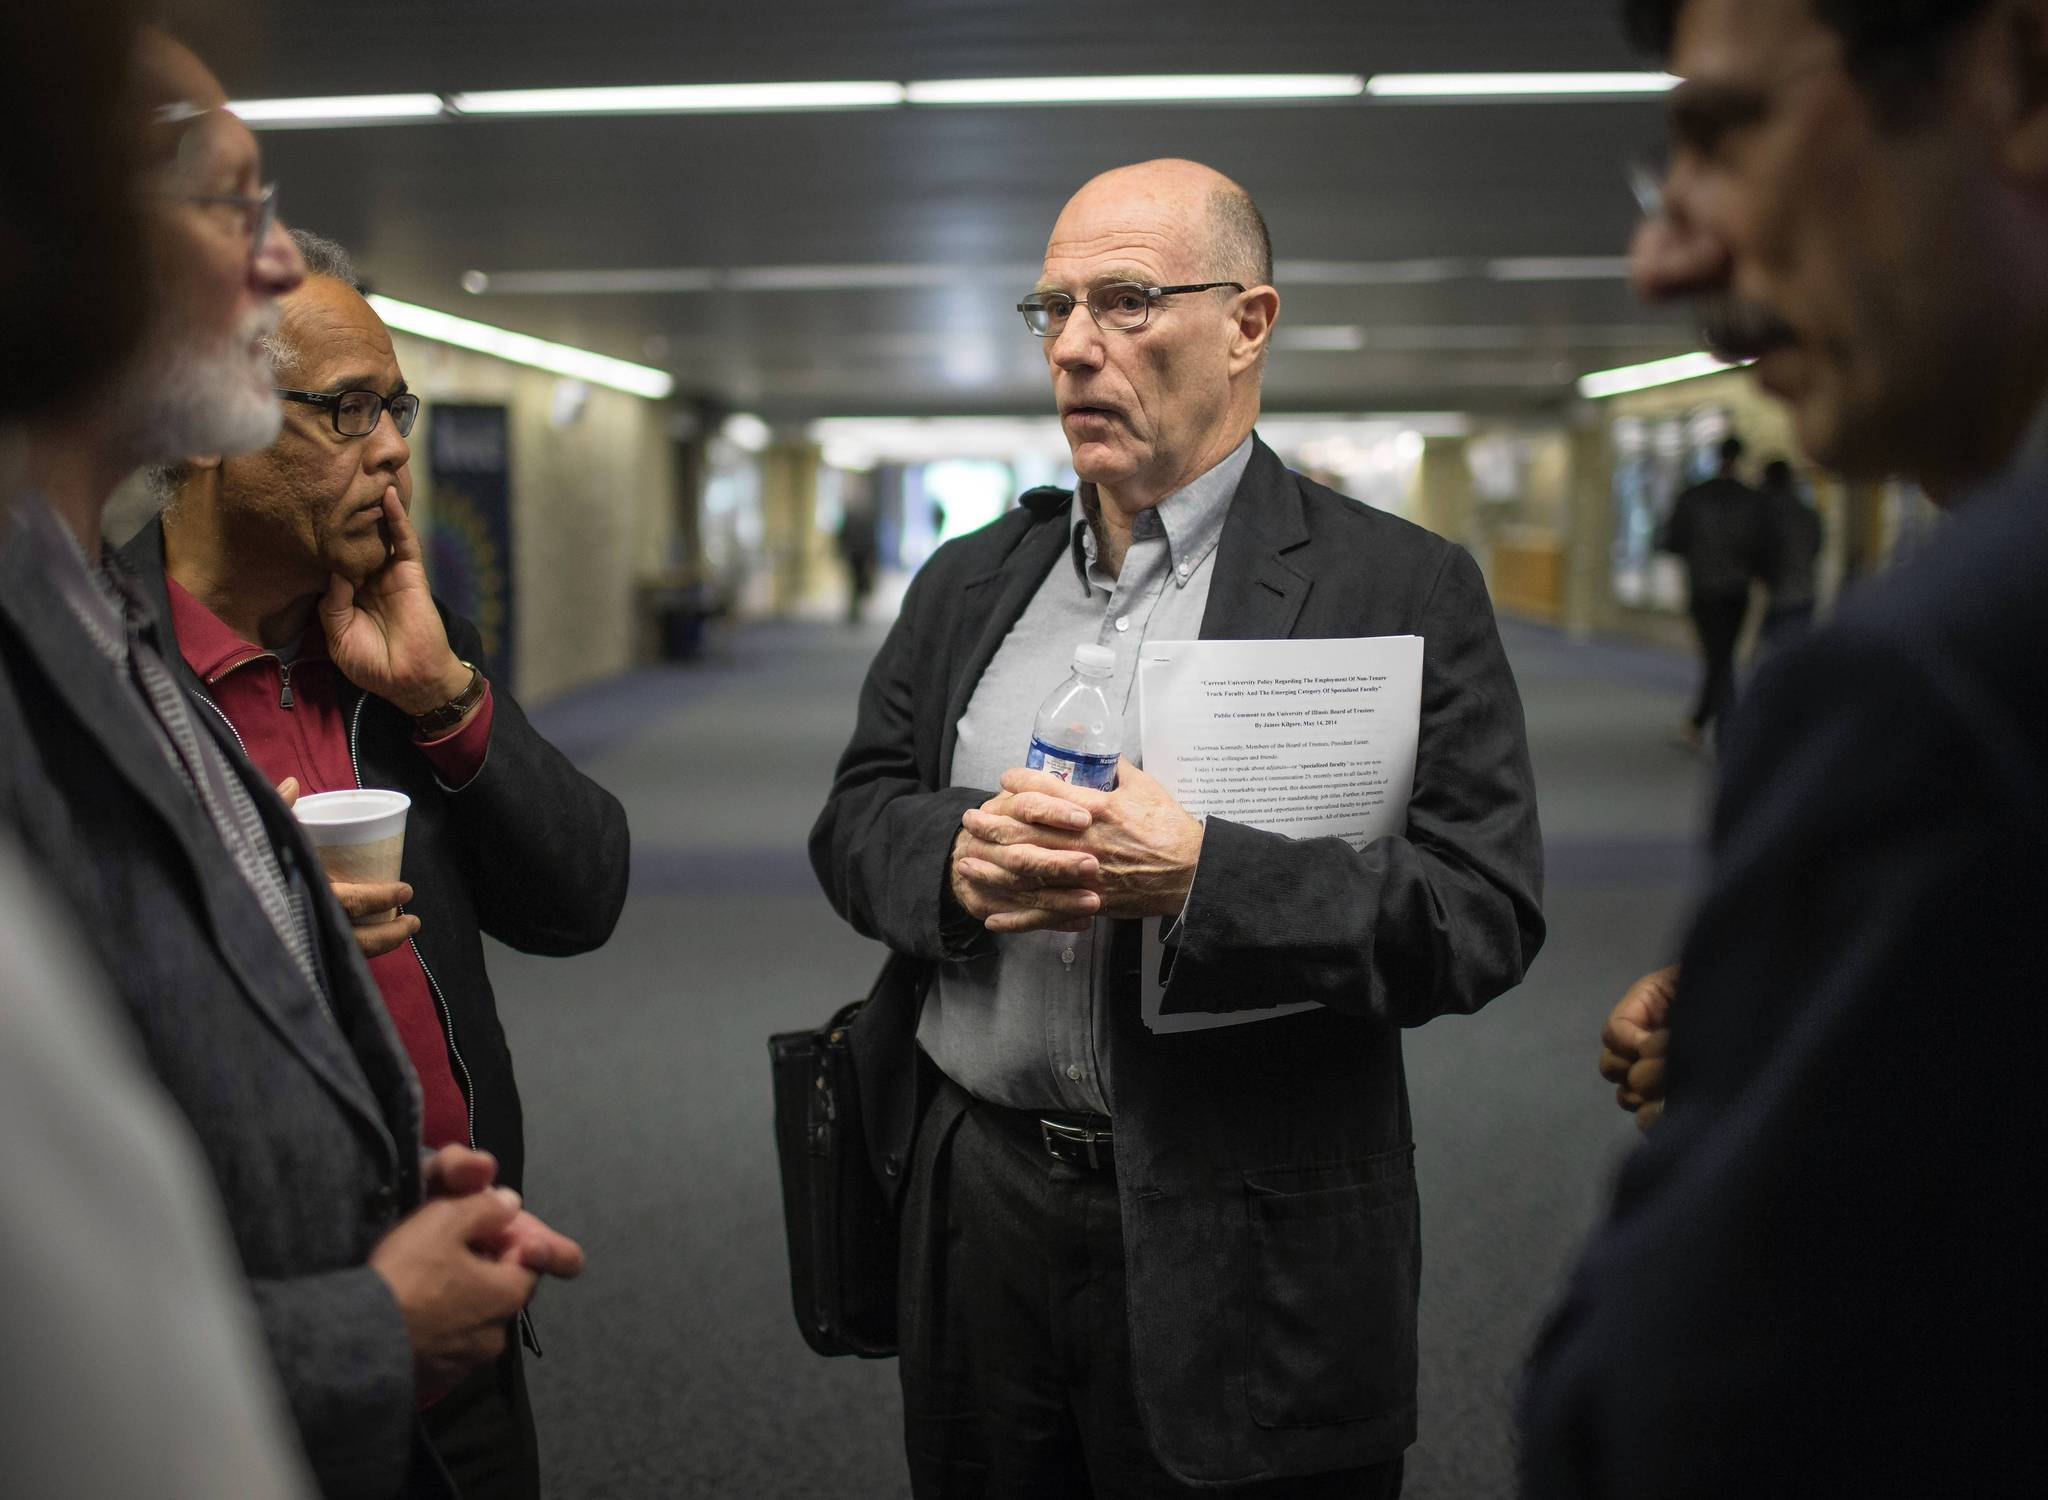 James Kilgore speaks to colleagues after a board meeting at the University of Illinois Springfield campus.